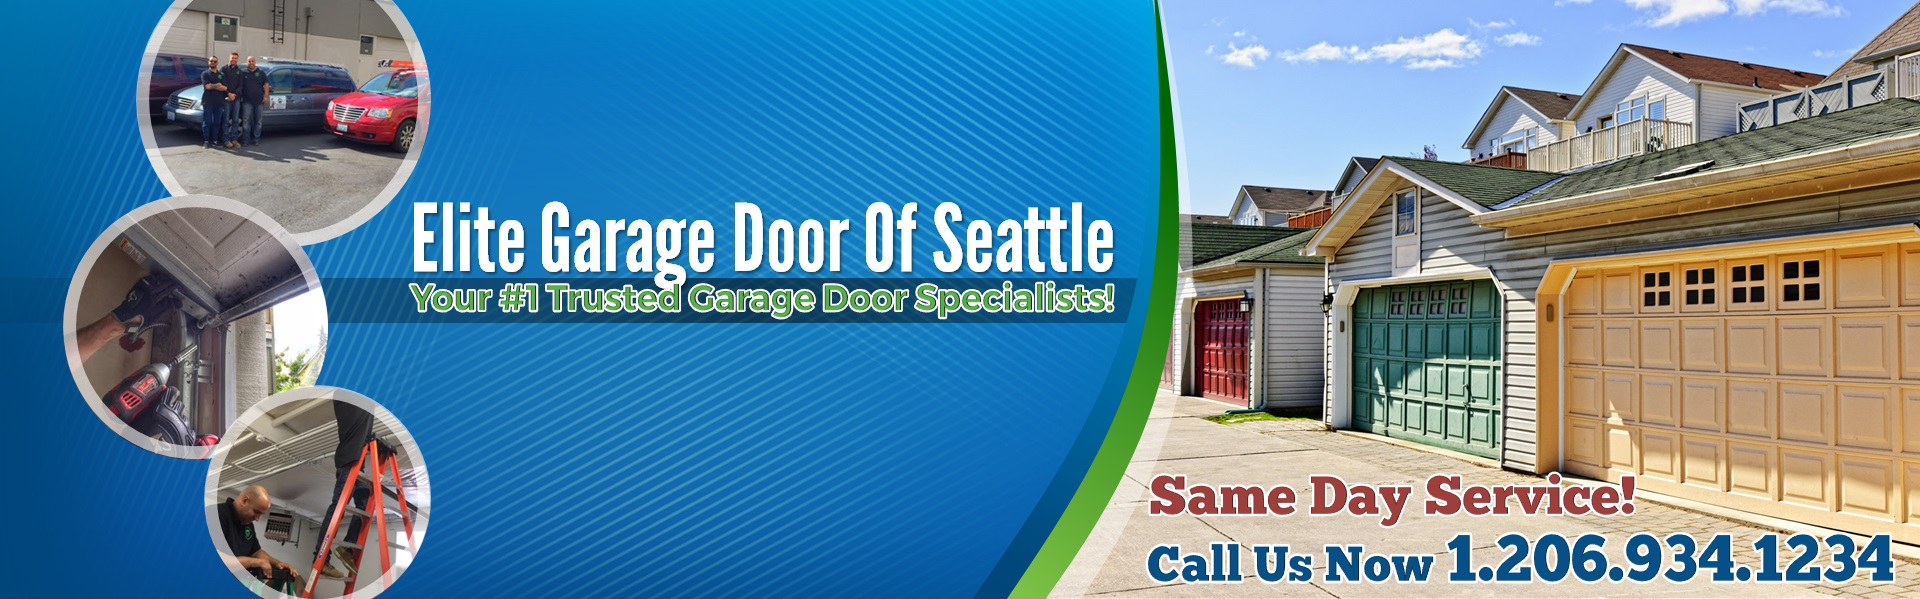 garage door lake repair services installation salt in county elite ut city